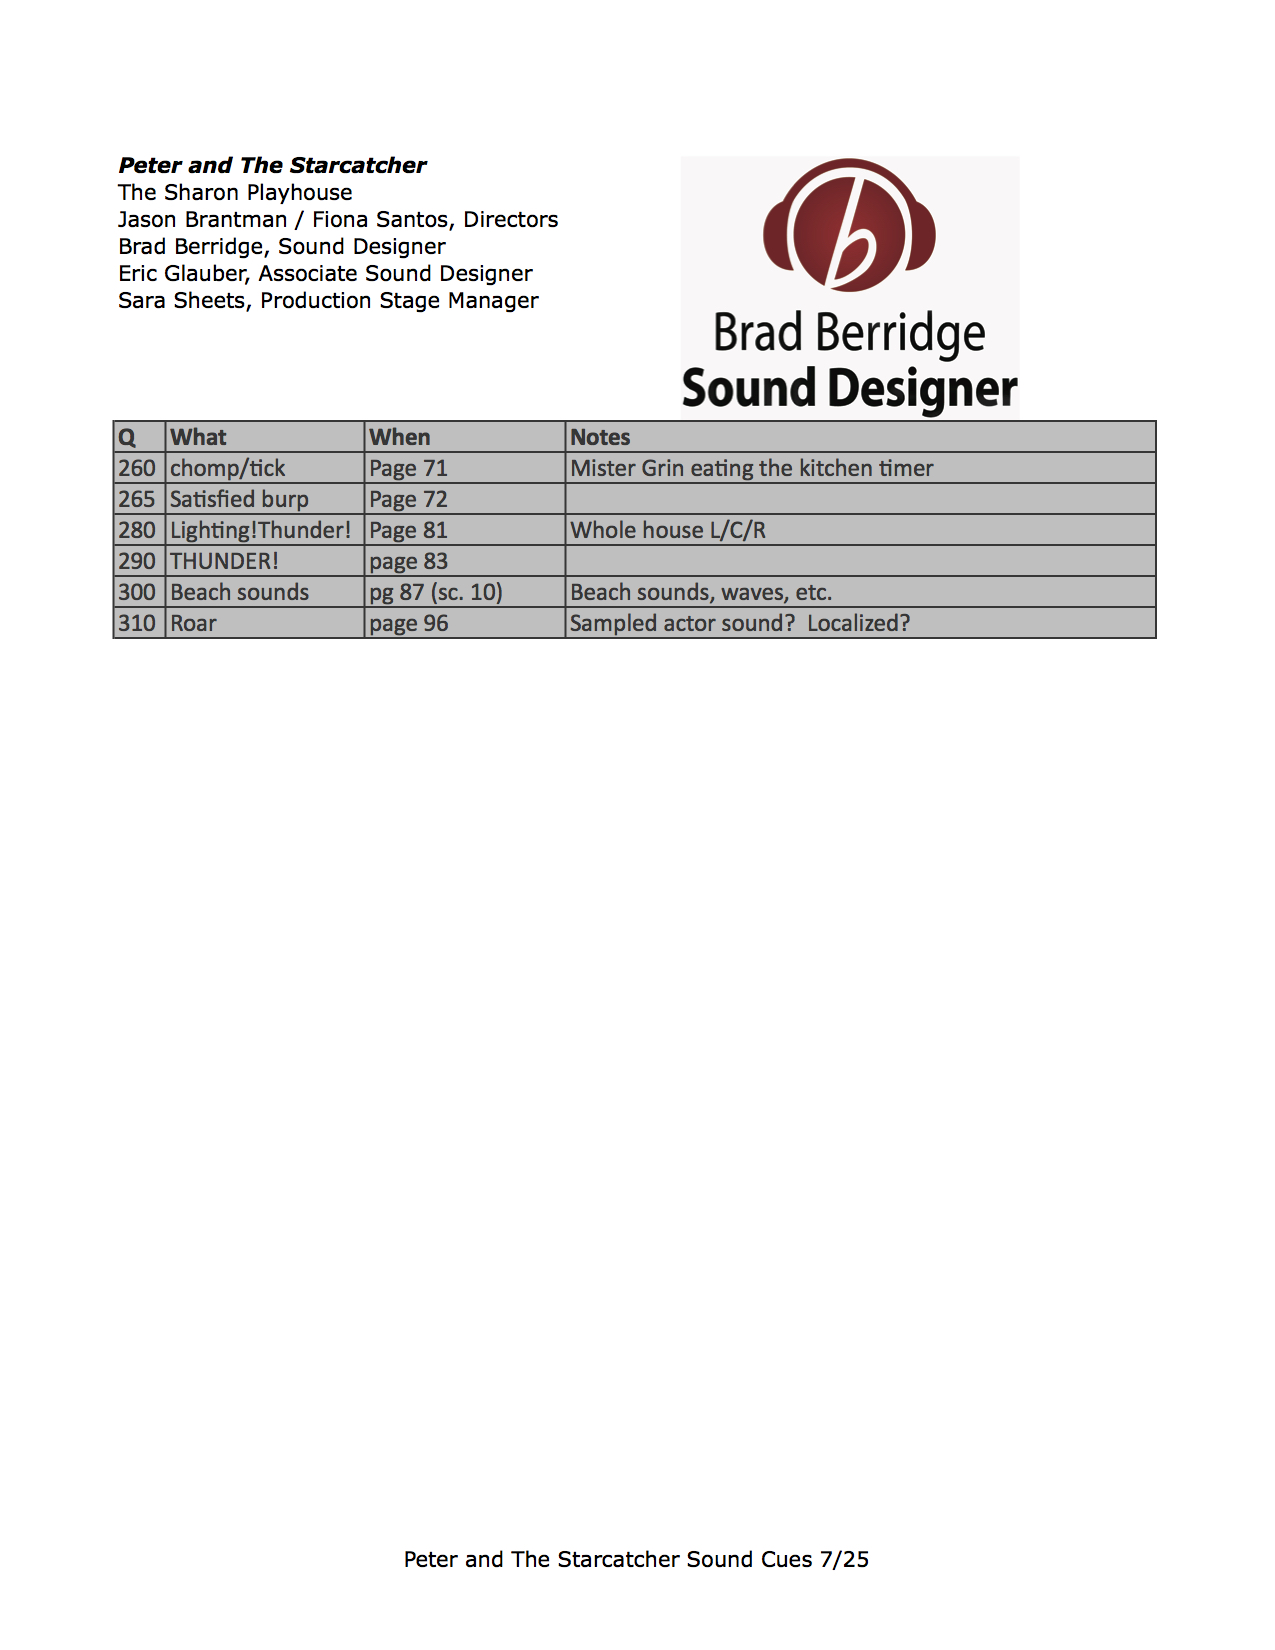 Peter & The Starcatcher Sound Cue List Sheet2.jpg